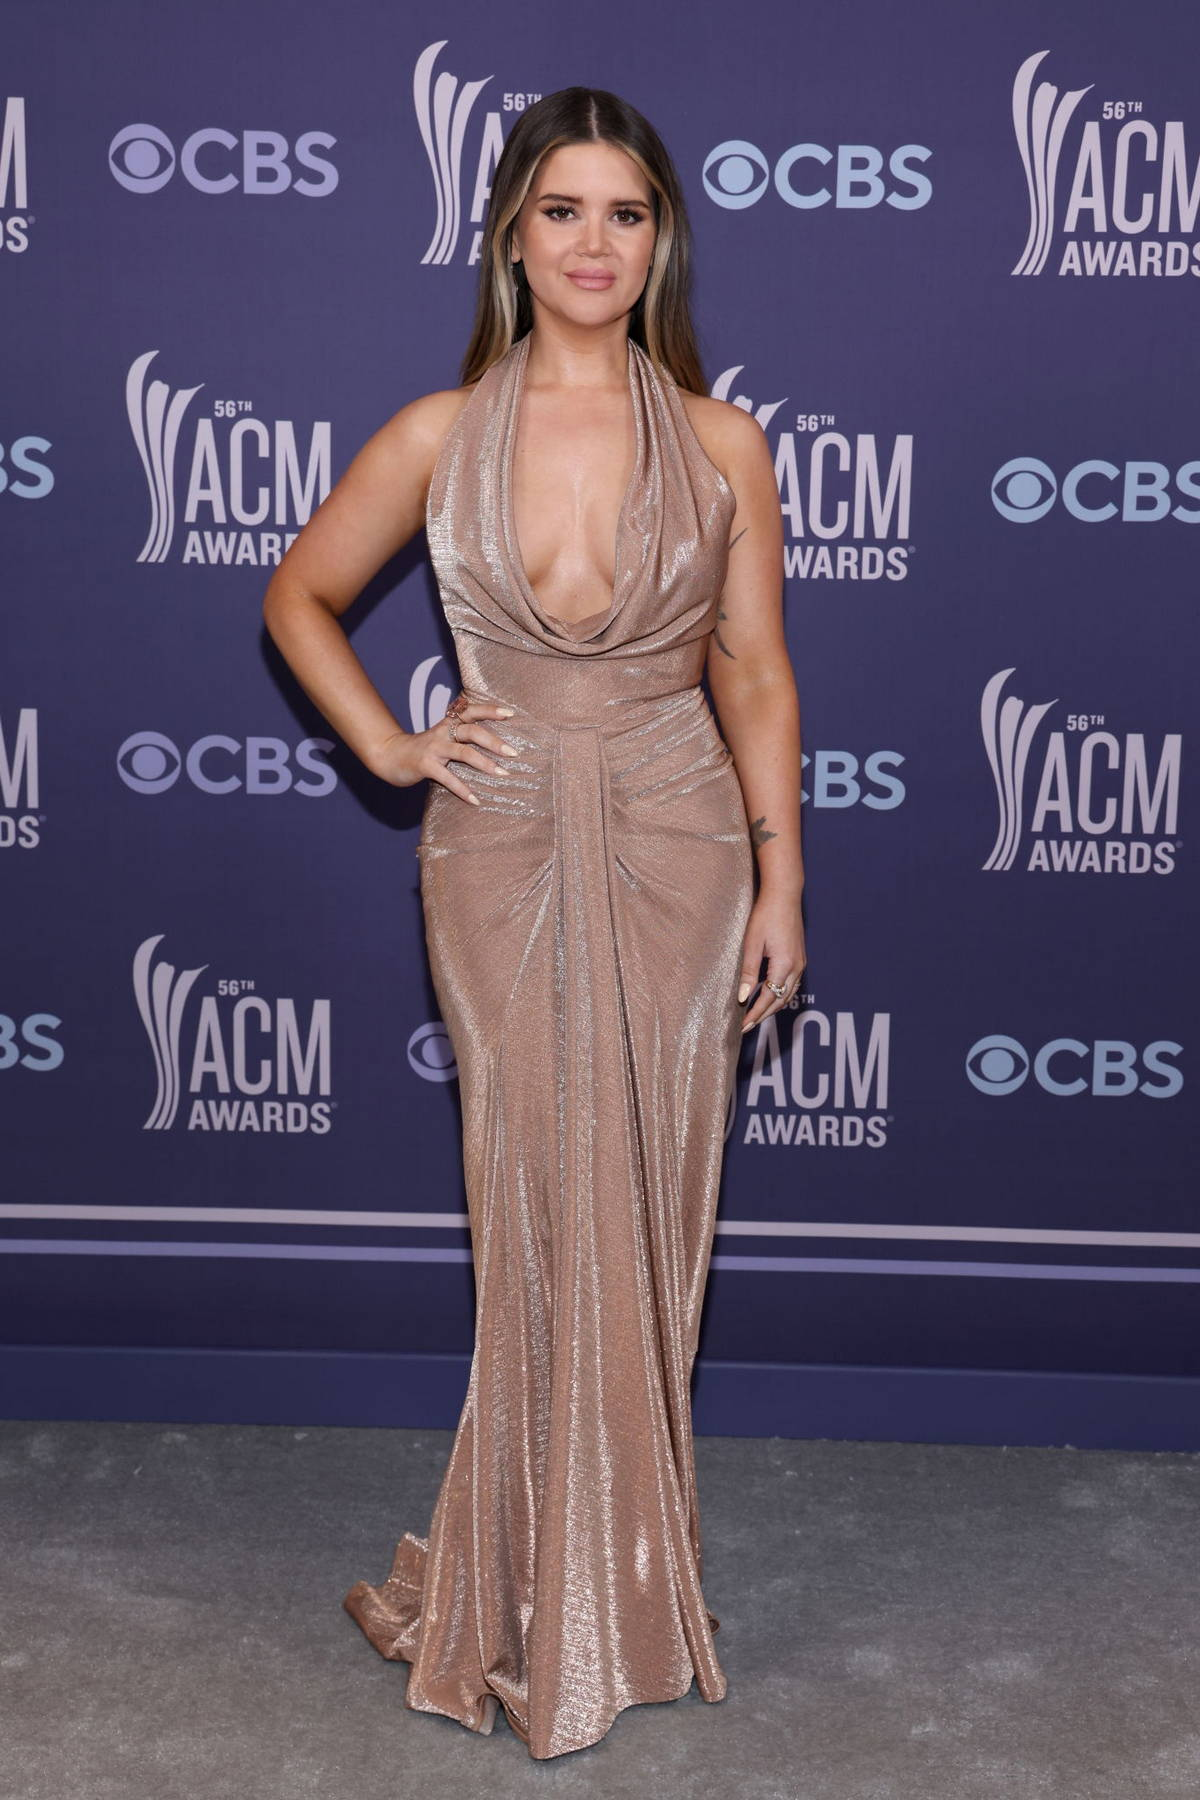 Maren Morris attends the 56th Academy of Country Music Awards at the Grand Ole Opry in Nashville, Tennessee